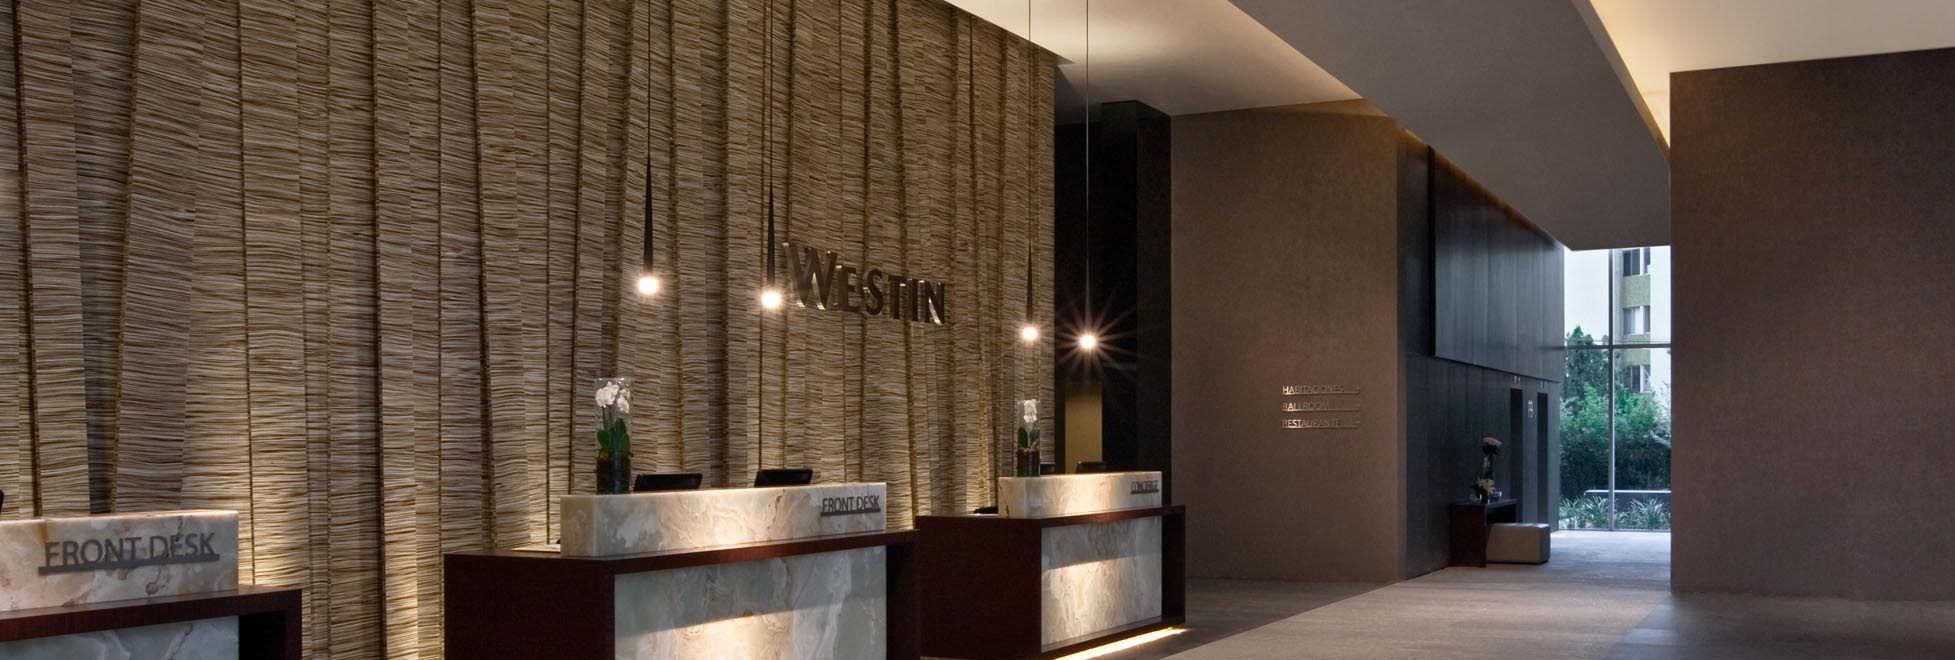 Westin Guadalajara - Features